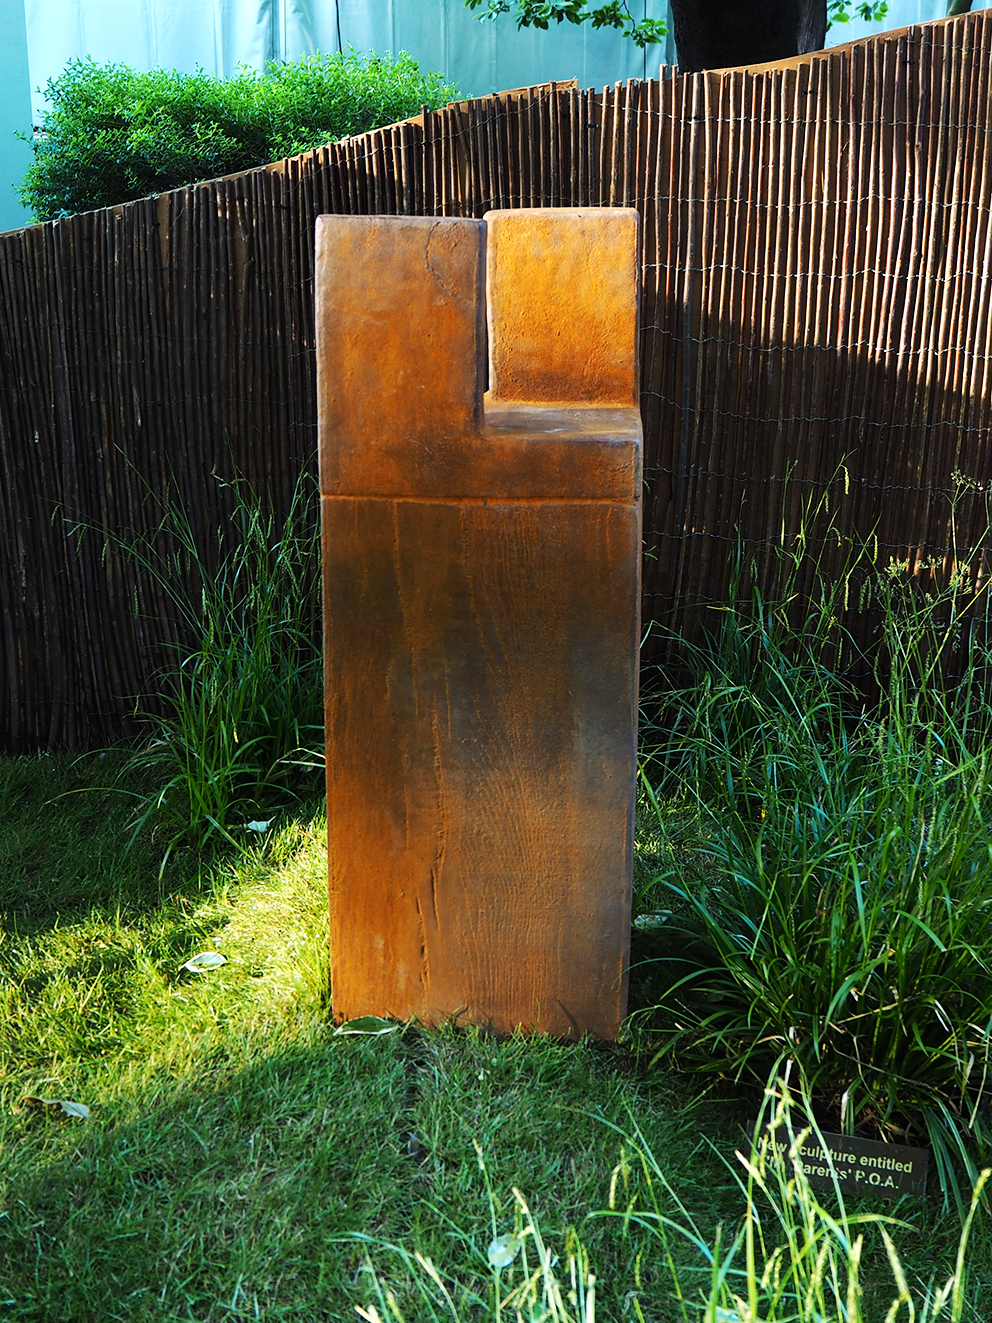 French For Pineapple Blog - RHS Chelsea Flower Show 2017 - modern rusted sculpture